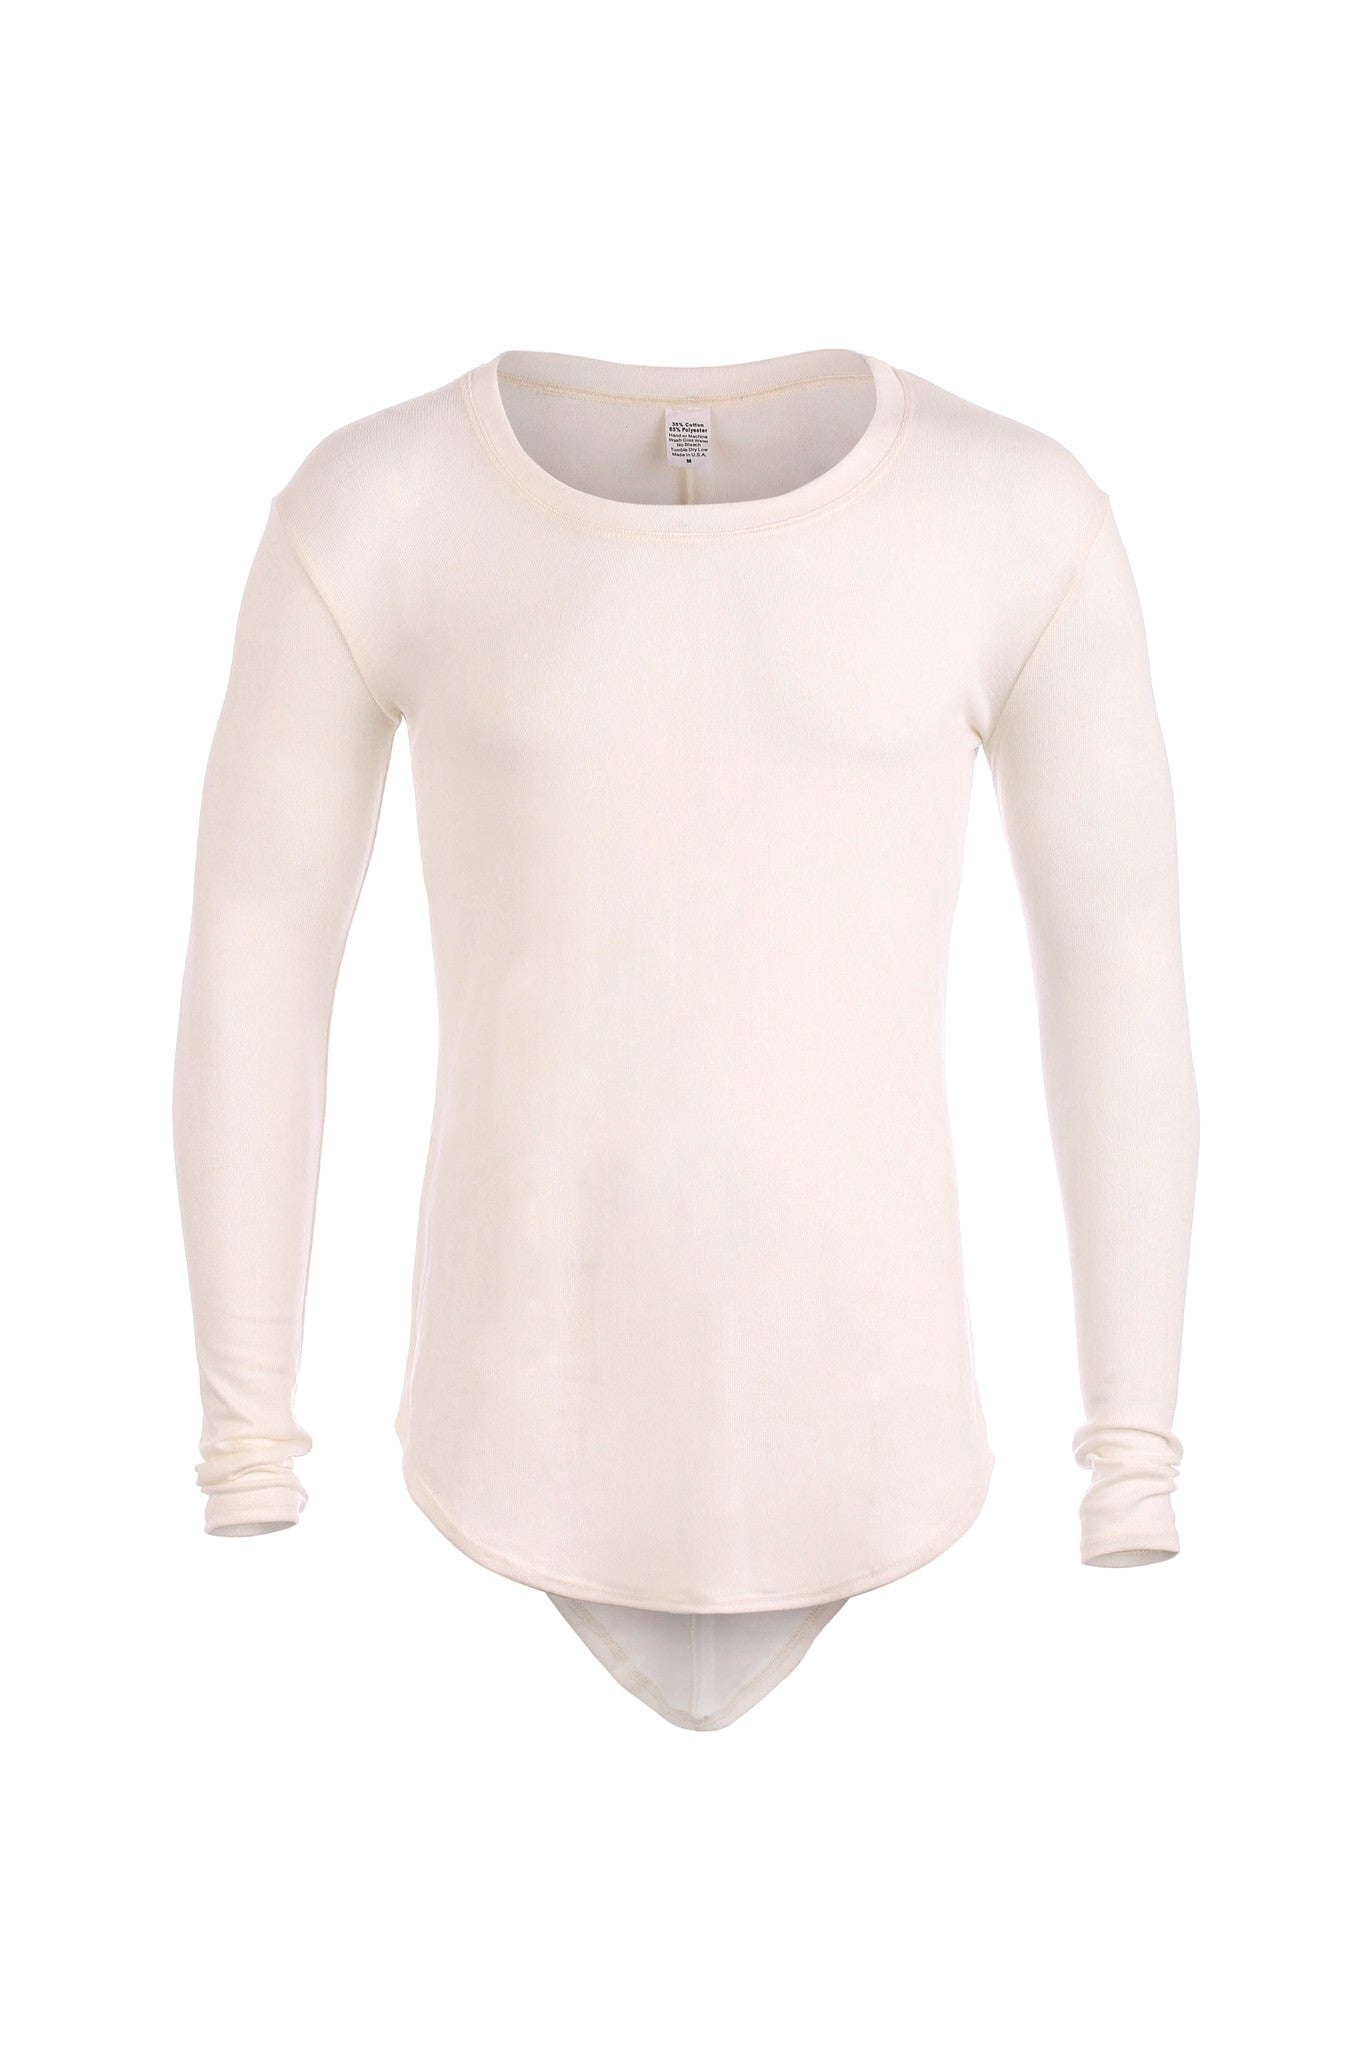 Long sleeve soft knit top